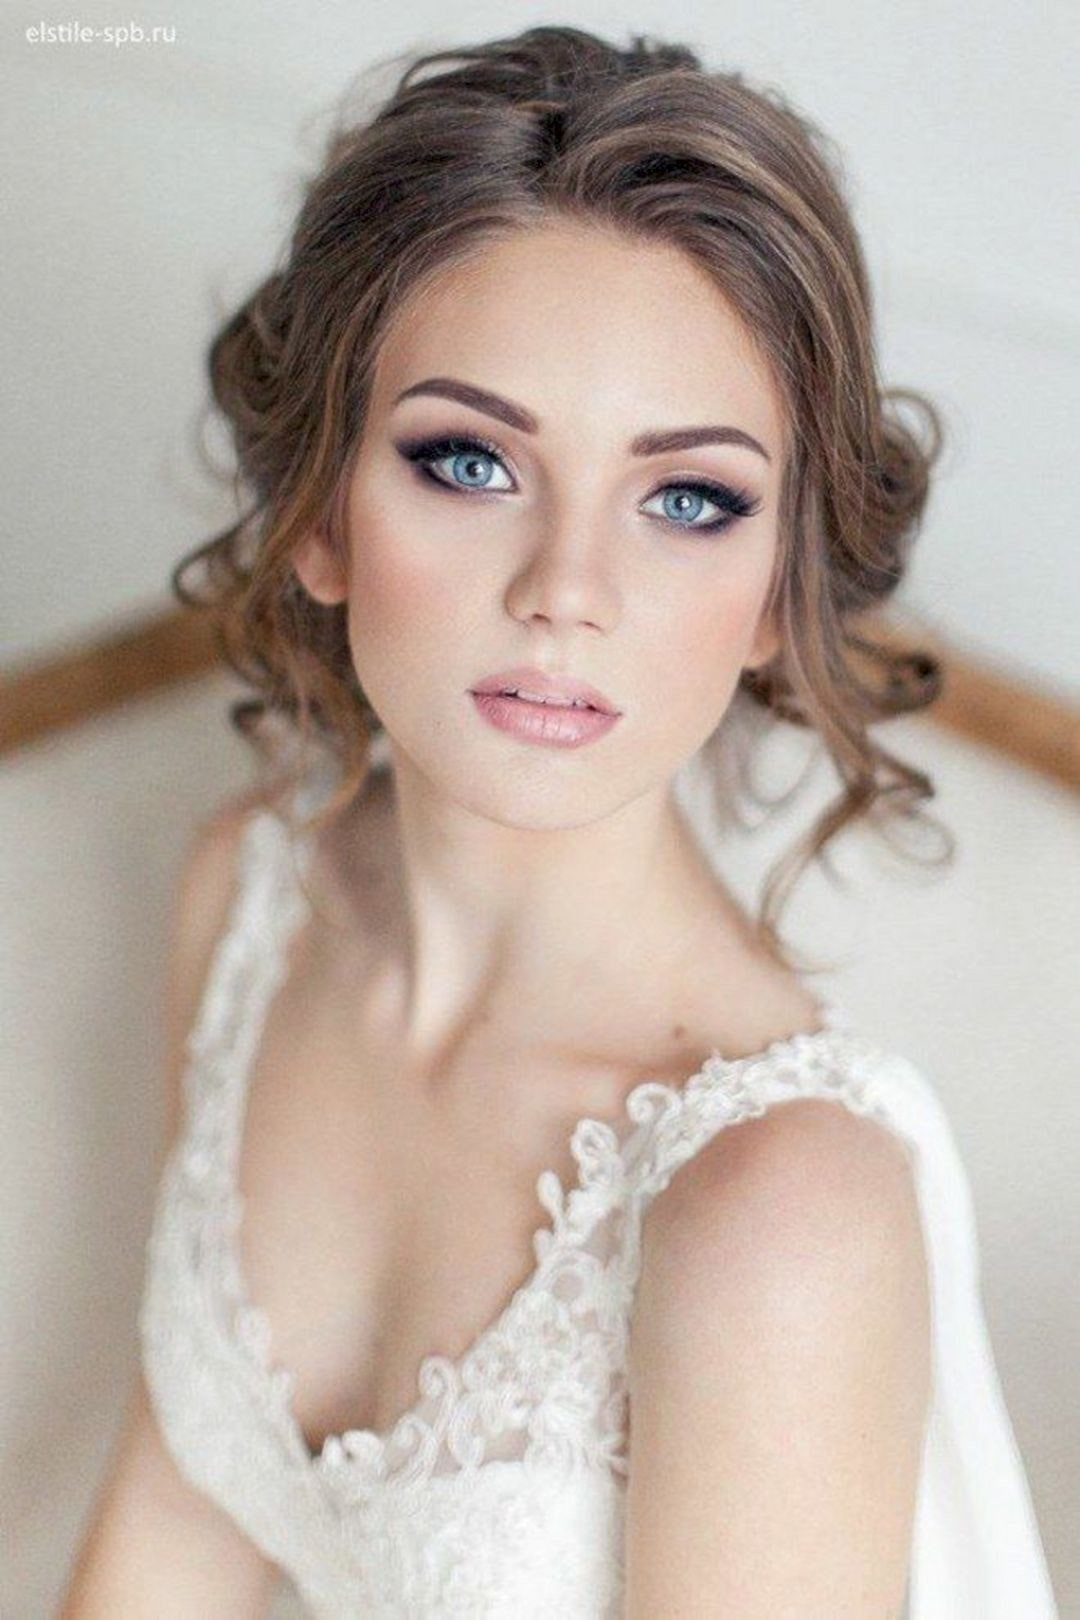 woman posing towards camera whilst wearing perfect makeup and a wedding dress.